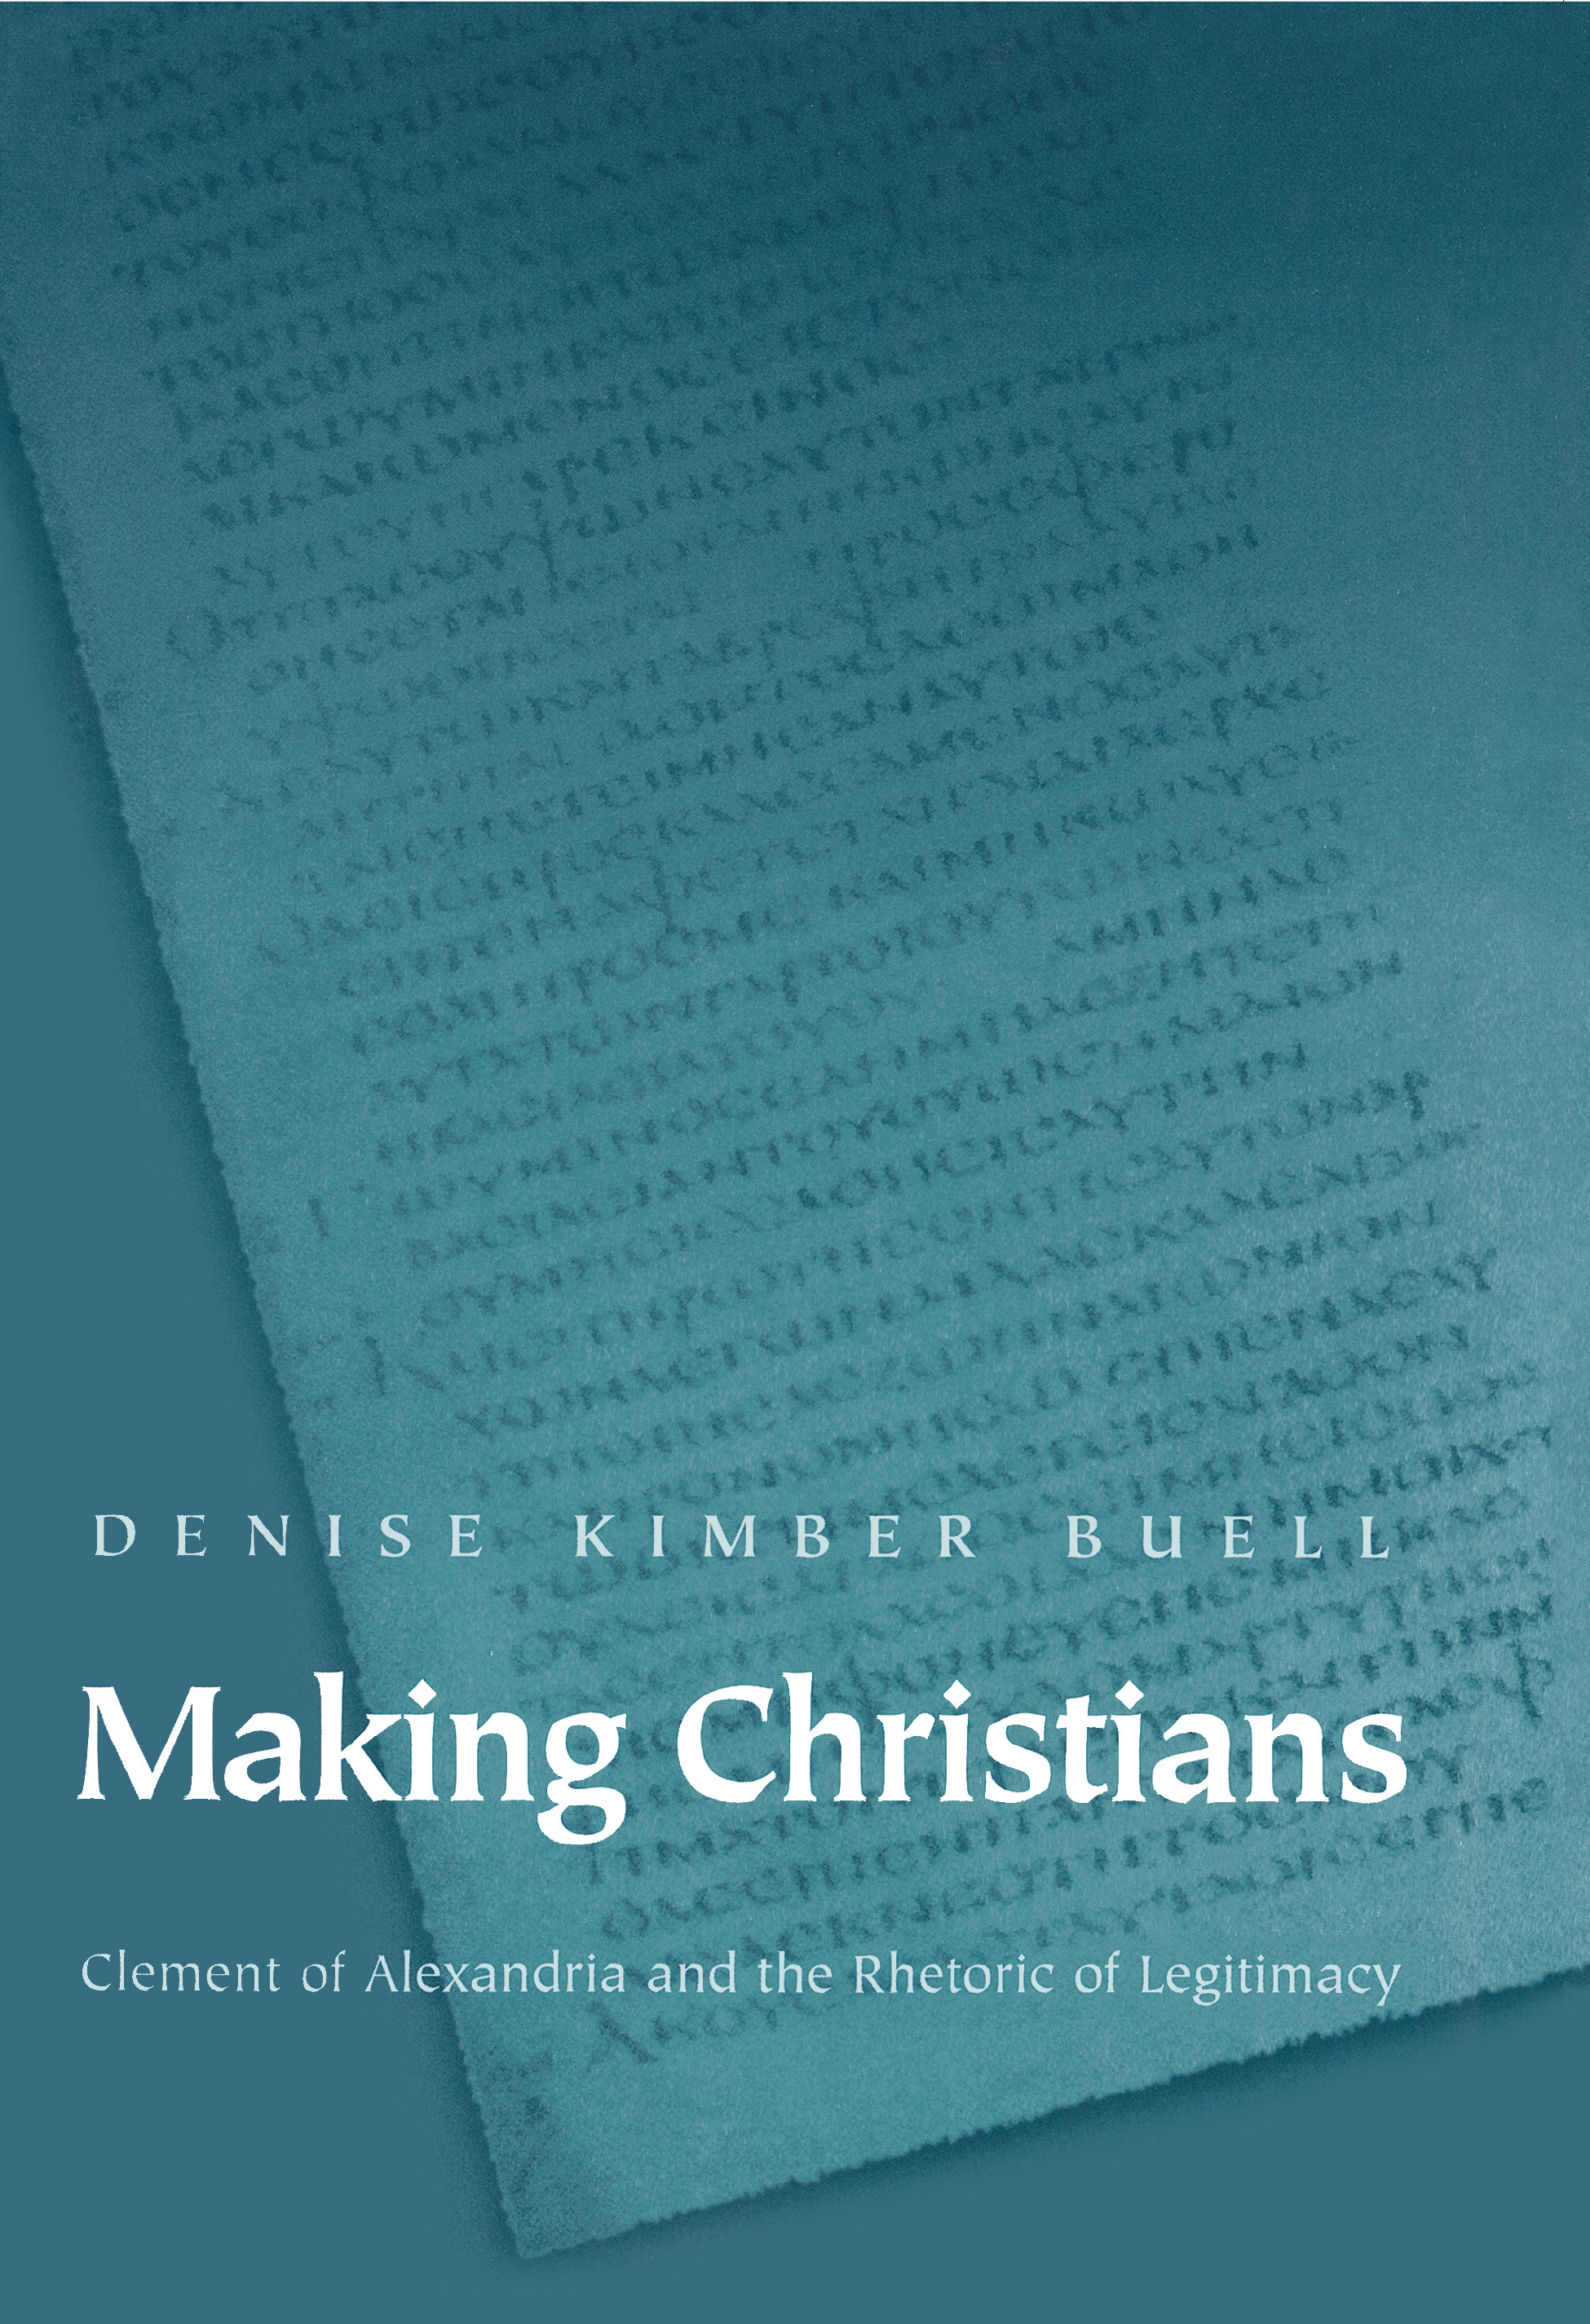 Making Christians